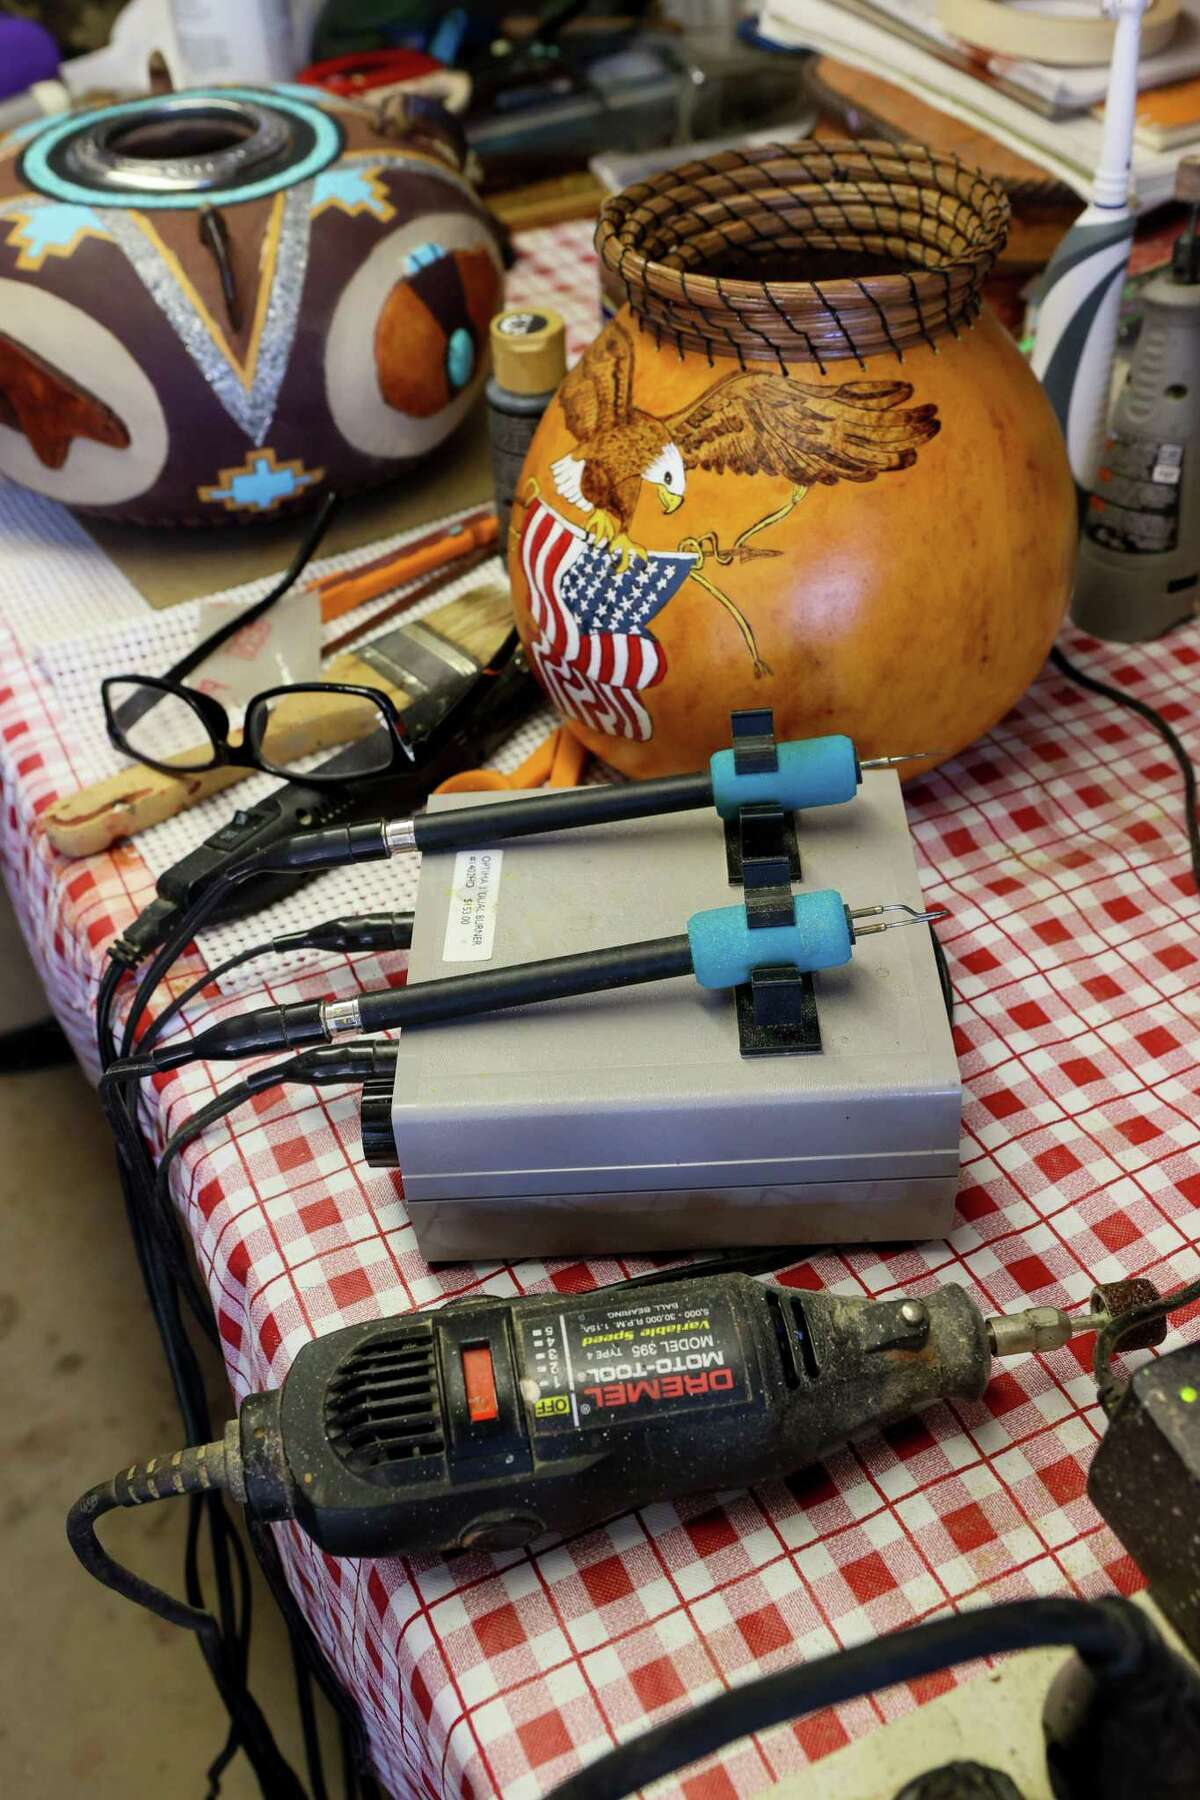 Converse resident David Cleaveland uses burners, center, for cutting and edging straight lines in gourds, and a Dremel tool, below,for sanding in his workshop garage on Friday, Sept. 17.